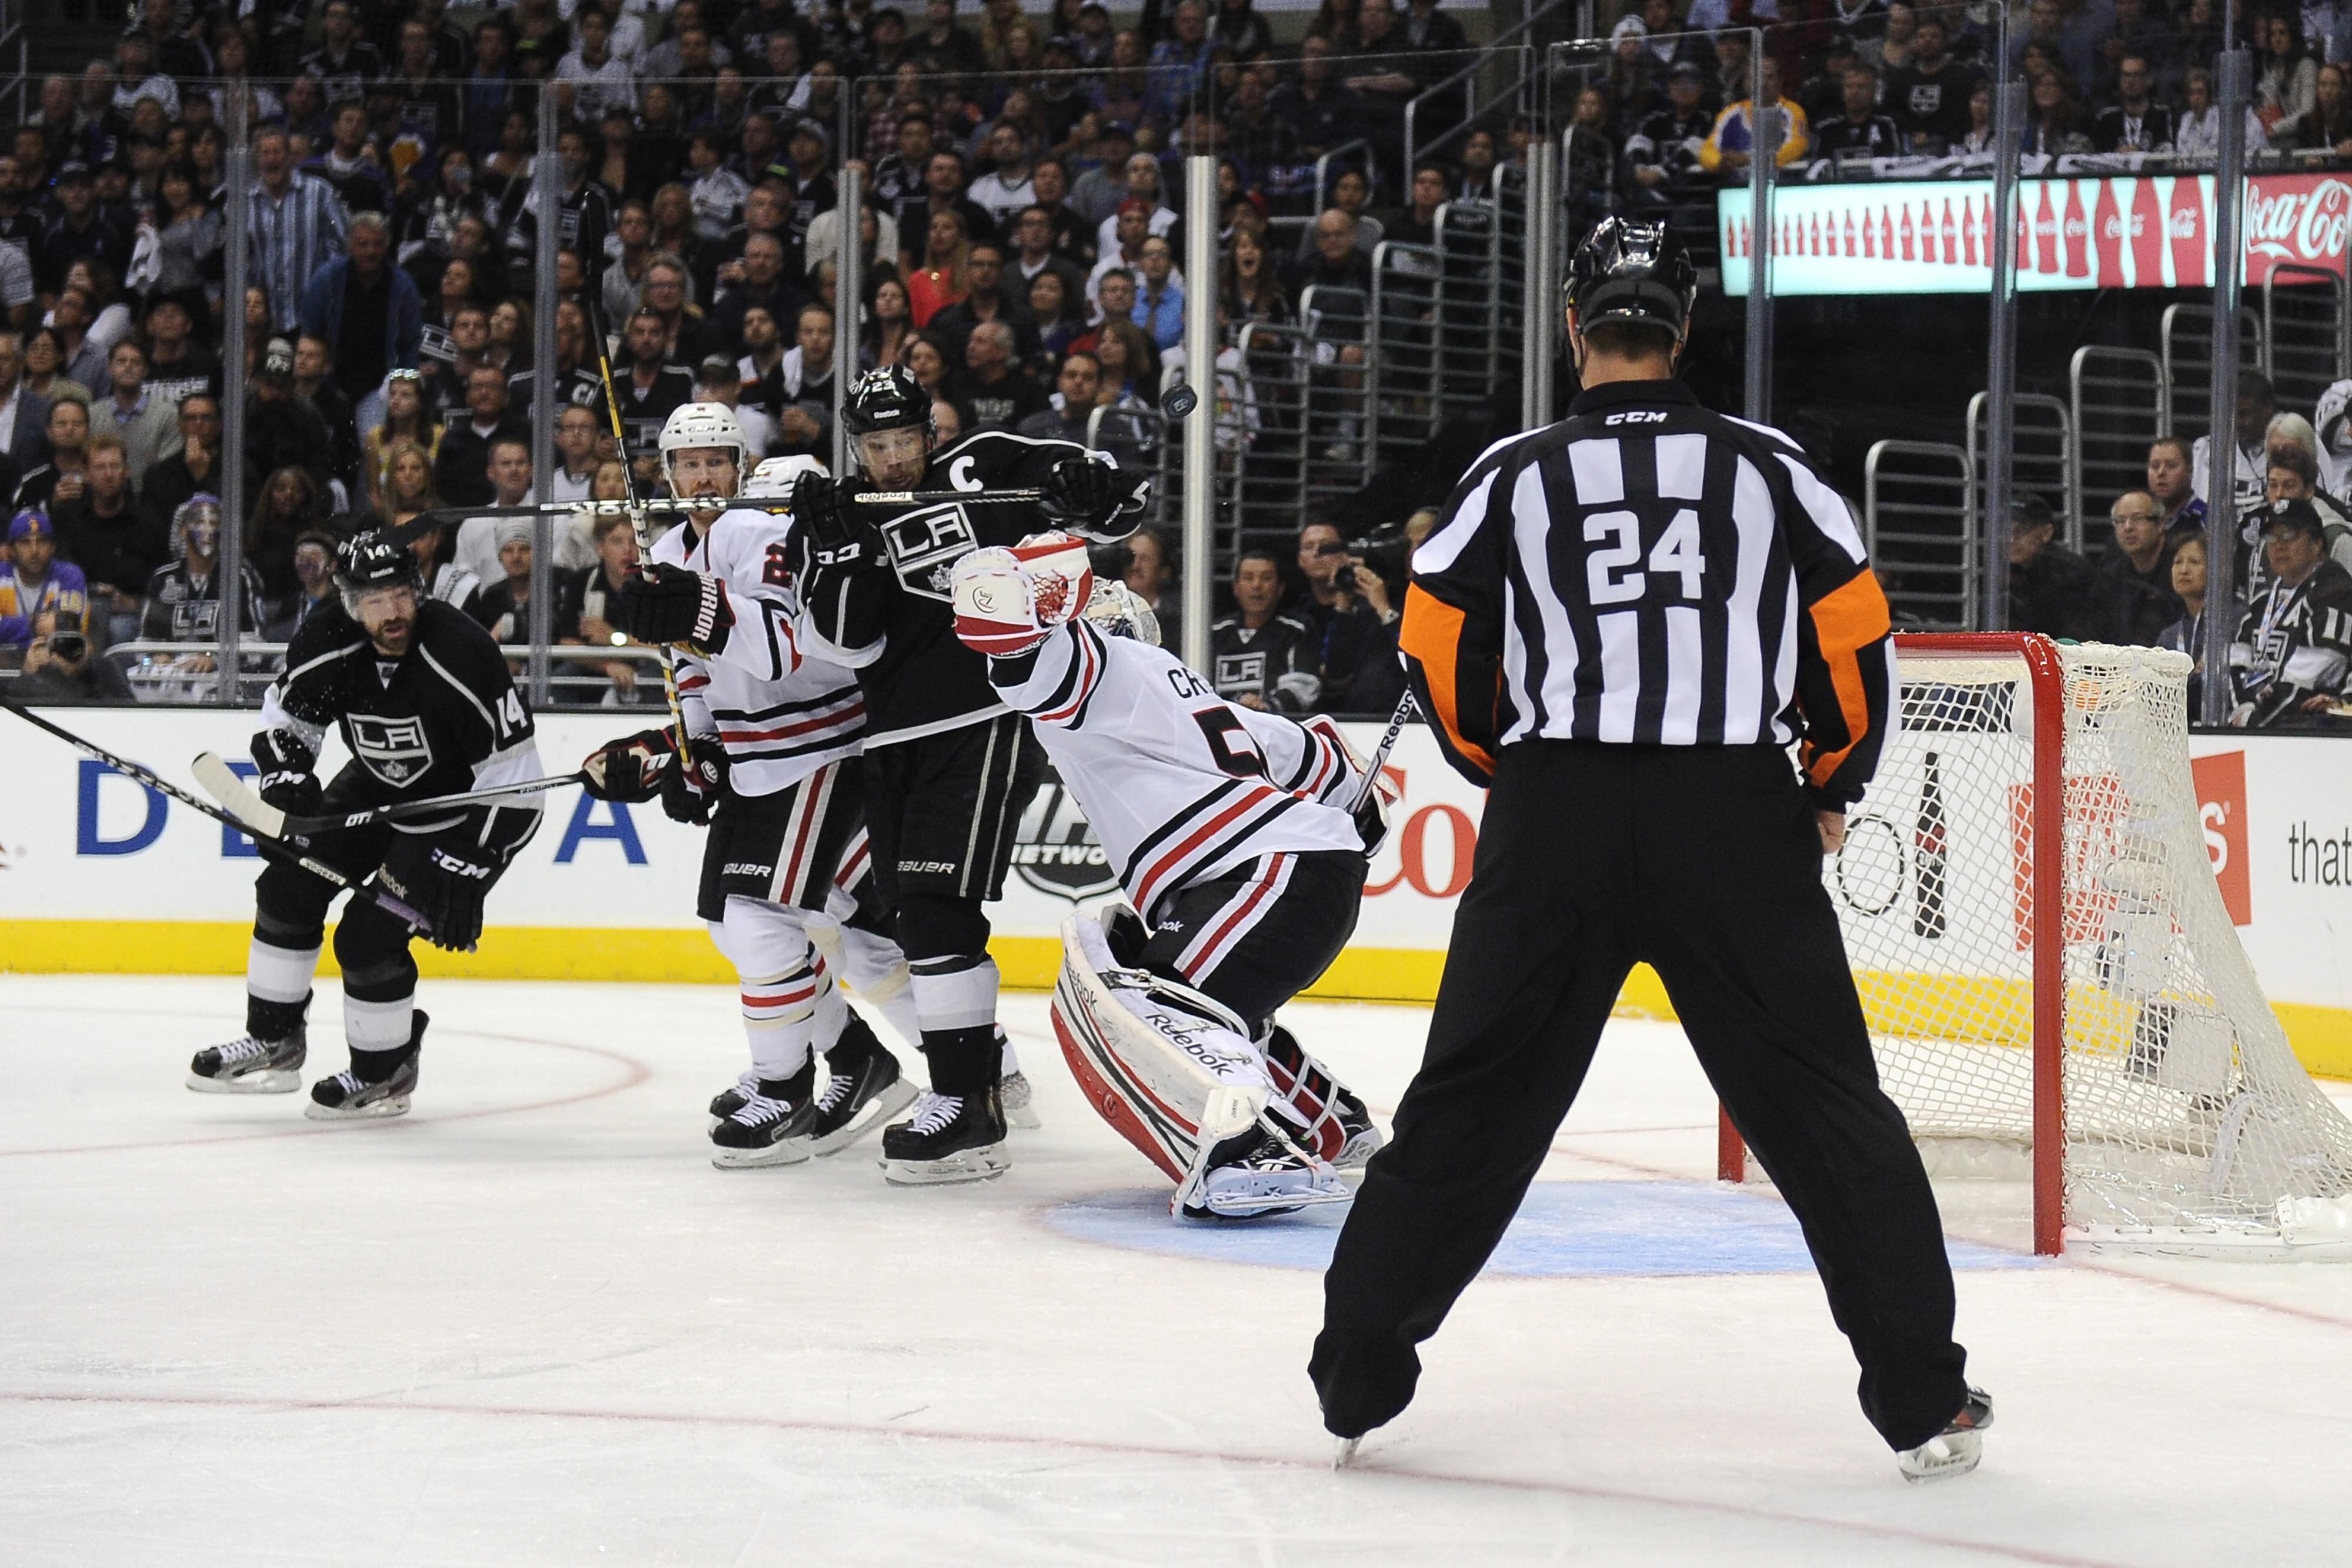 Stephen Walkom eyes Dustin Brown with suspicion...and fear